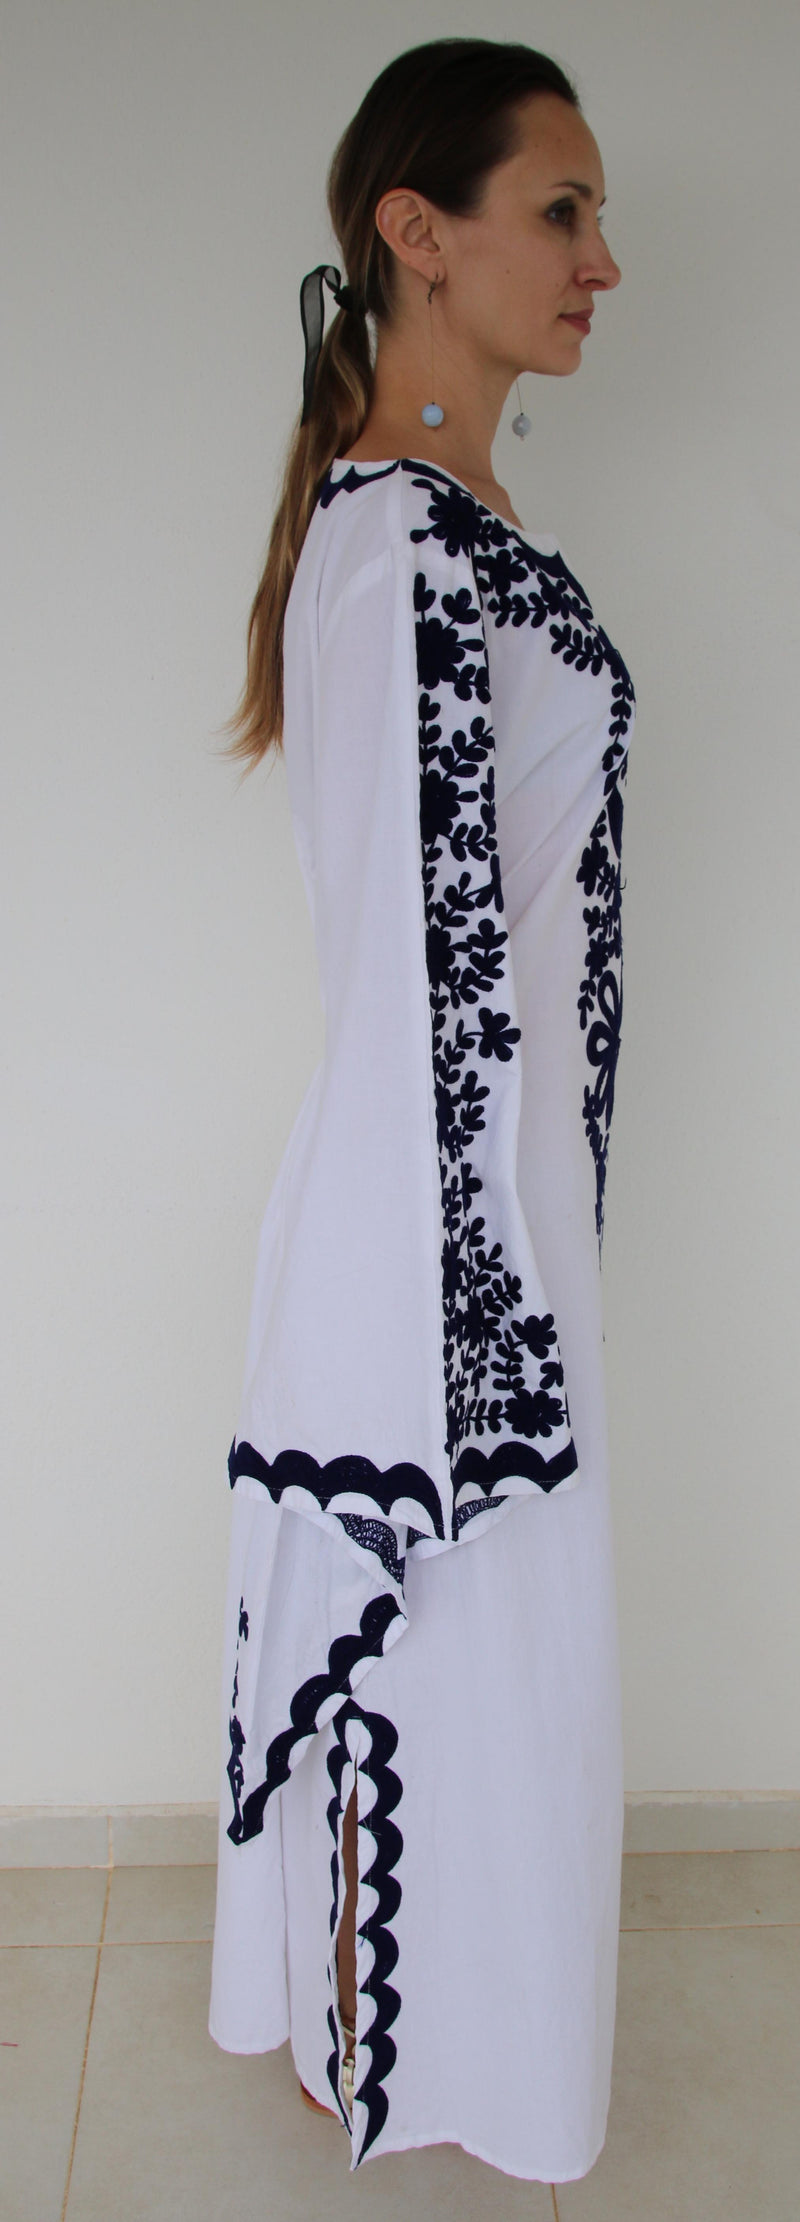 Fanm Mon Navy Silk Embroidery White Linen Maxi Dress Navy Shell SIZE SMALL